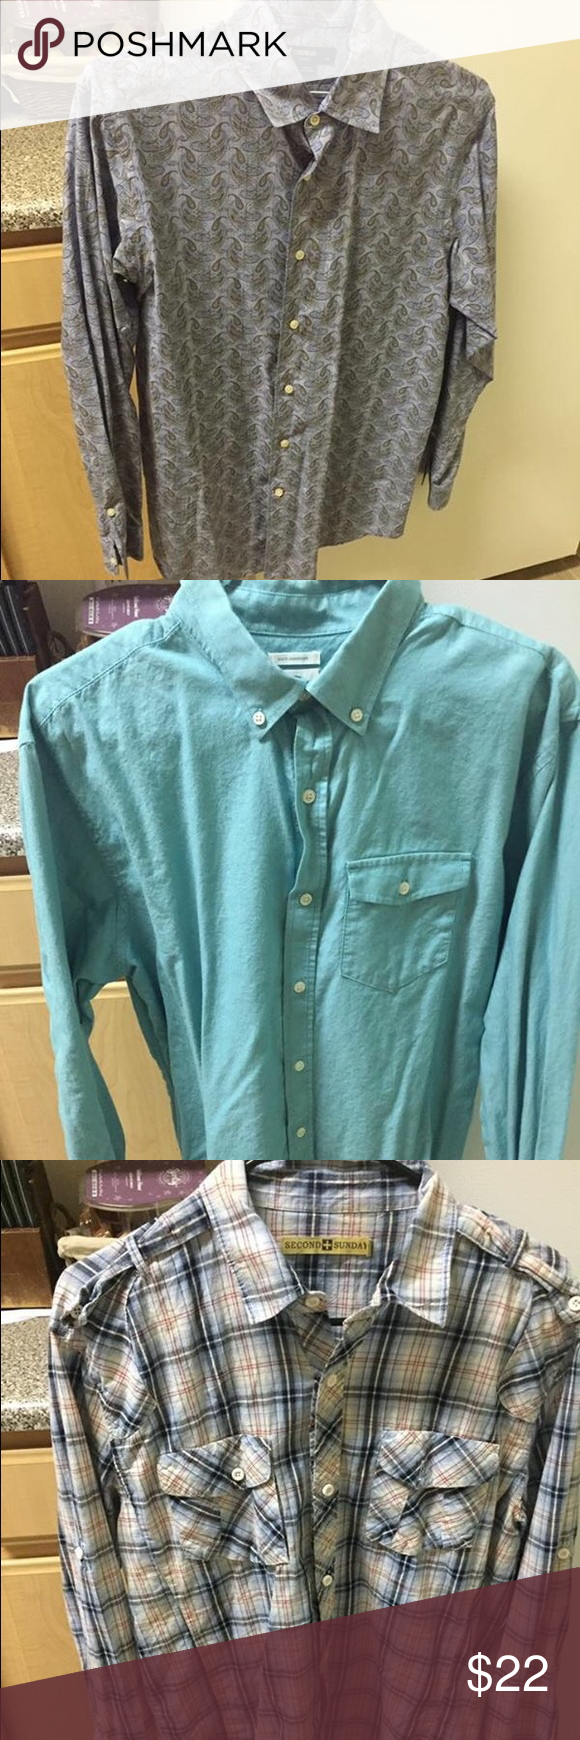 3 Men's Button Up Shirts All in great condition. All size Large there maybe one medium but it fit my husband as a size Large. Not all buckle brand just listed that way for exposure. No flaws. Buckle Shirts Casual Button Down Shirts